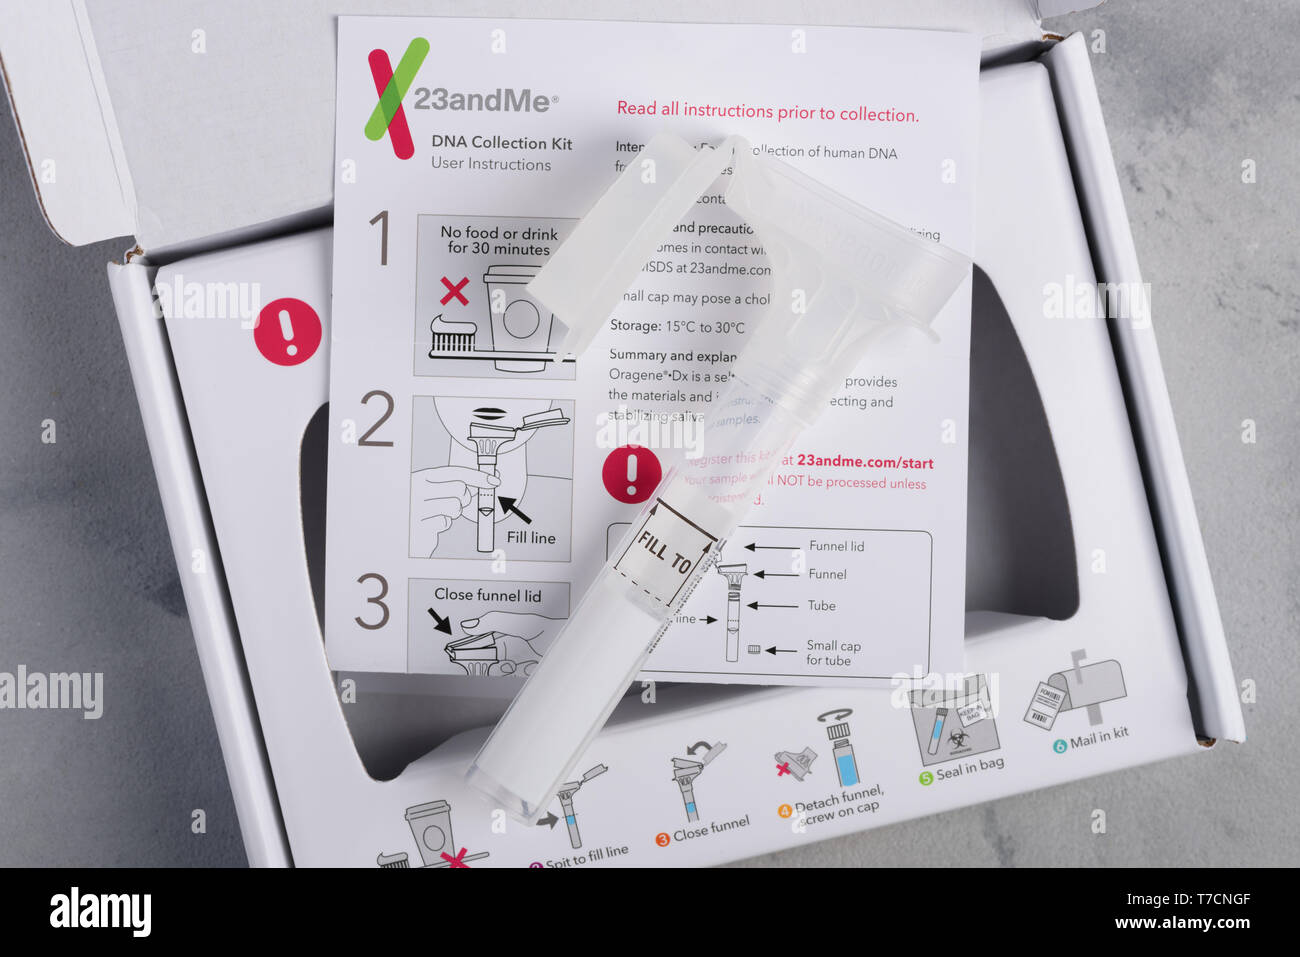 Kiev, Ukraine - 17 October 2018: 23andMe personal ancestry genetic test saliva collection kit, with tube, box and instructions. Illustrative editorial - Stock Image